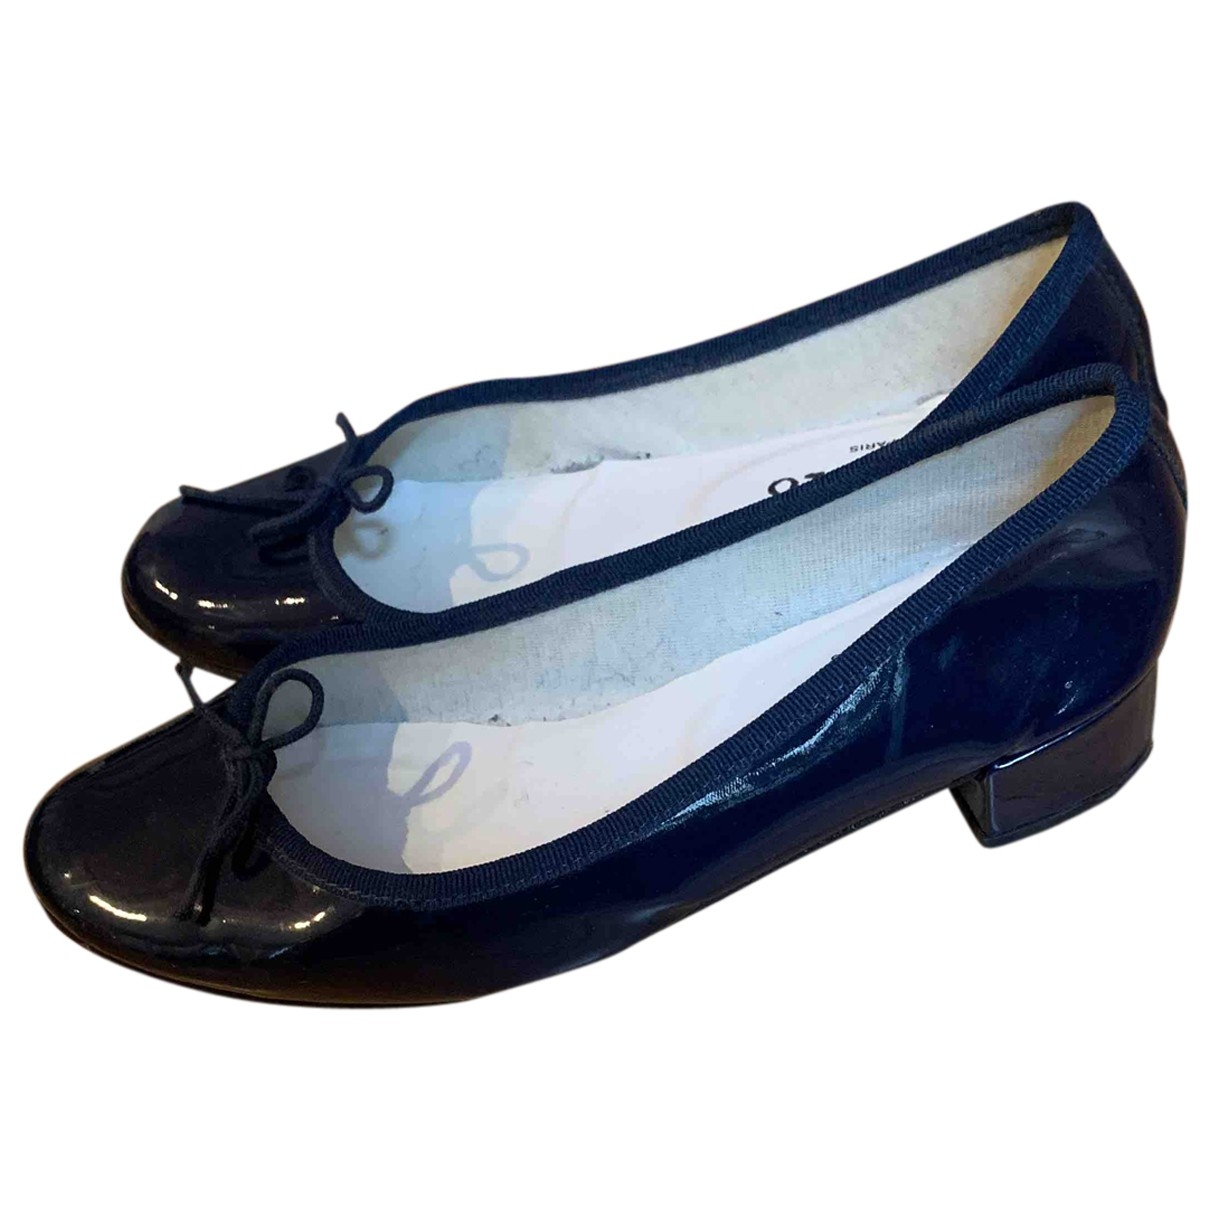 Repetto \N Ballerinas in  Blau Lackleder